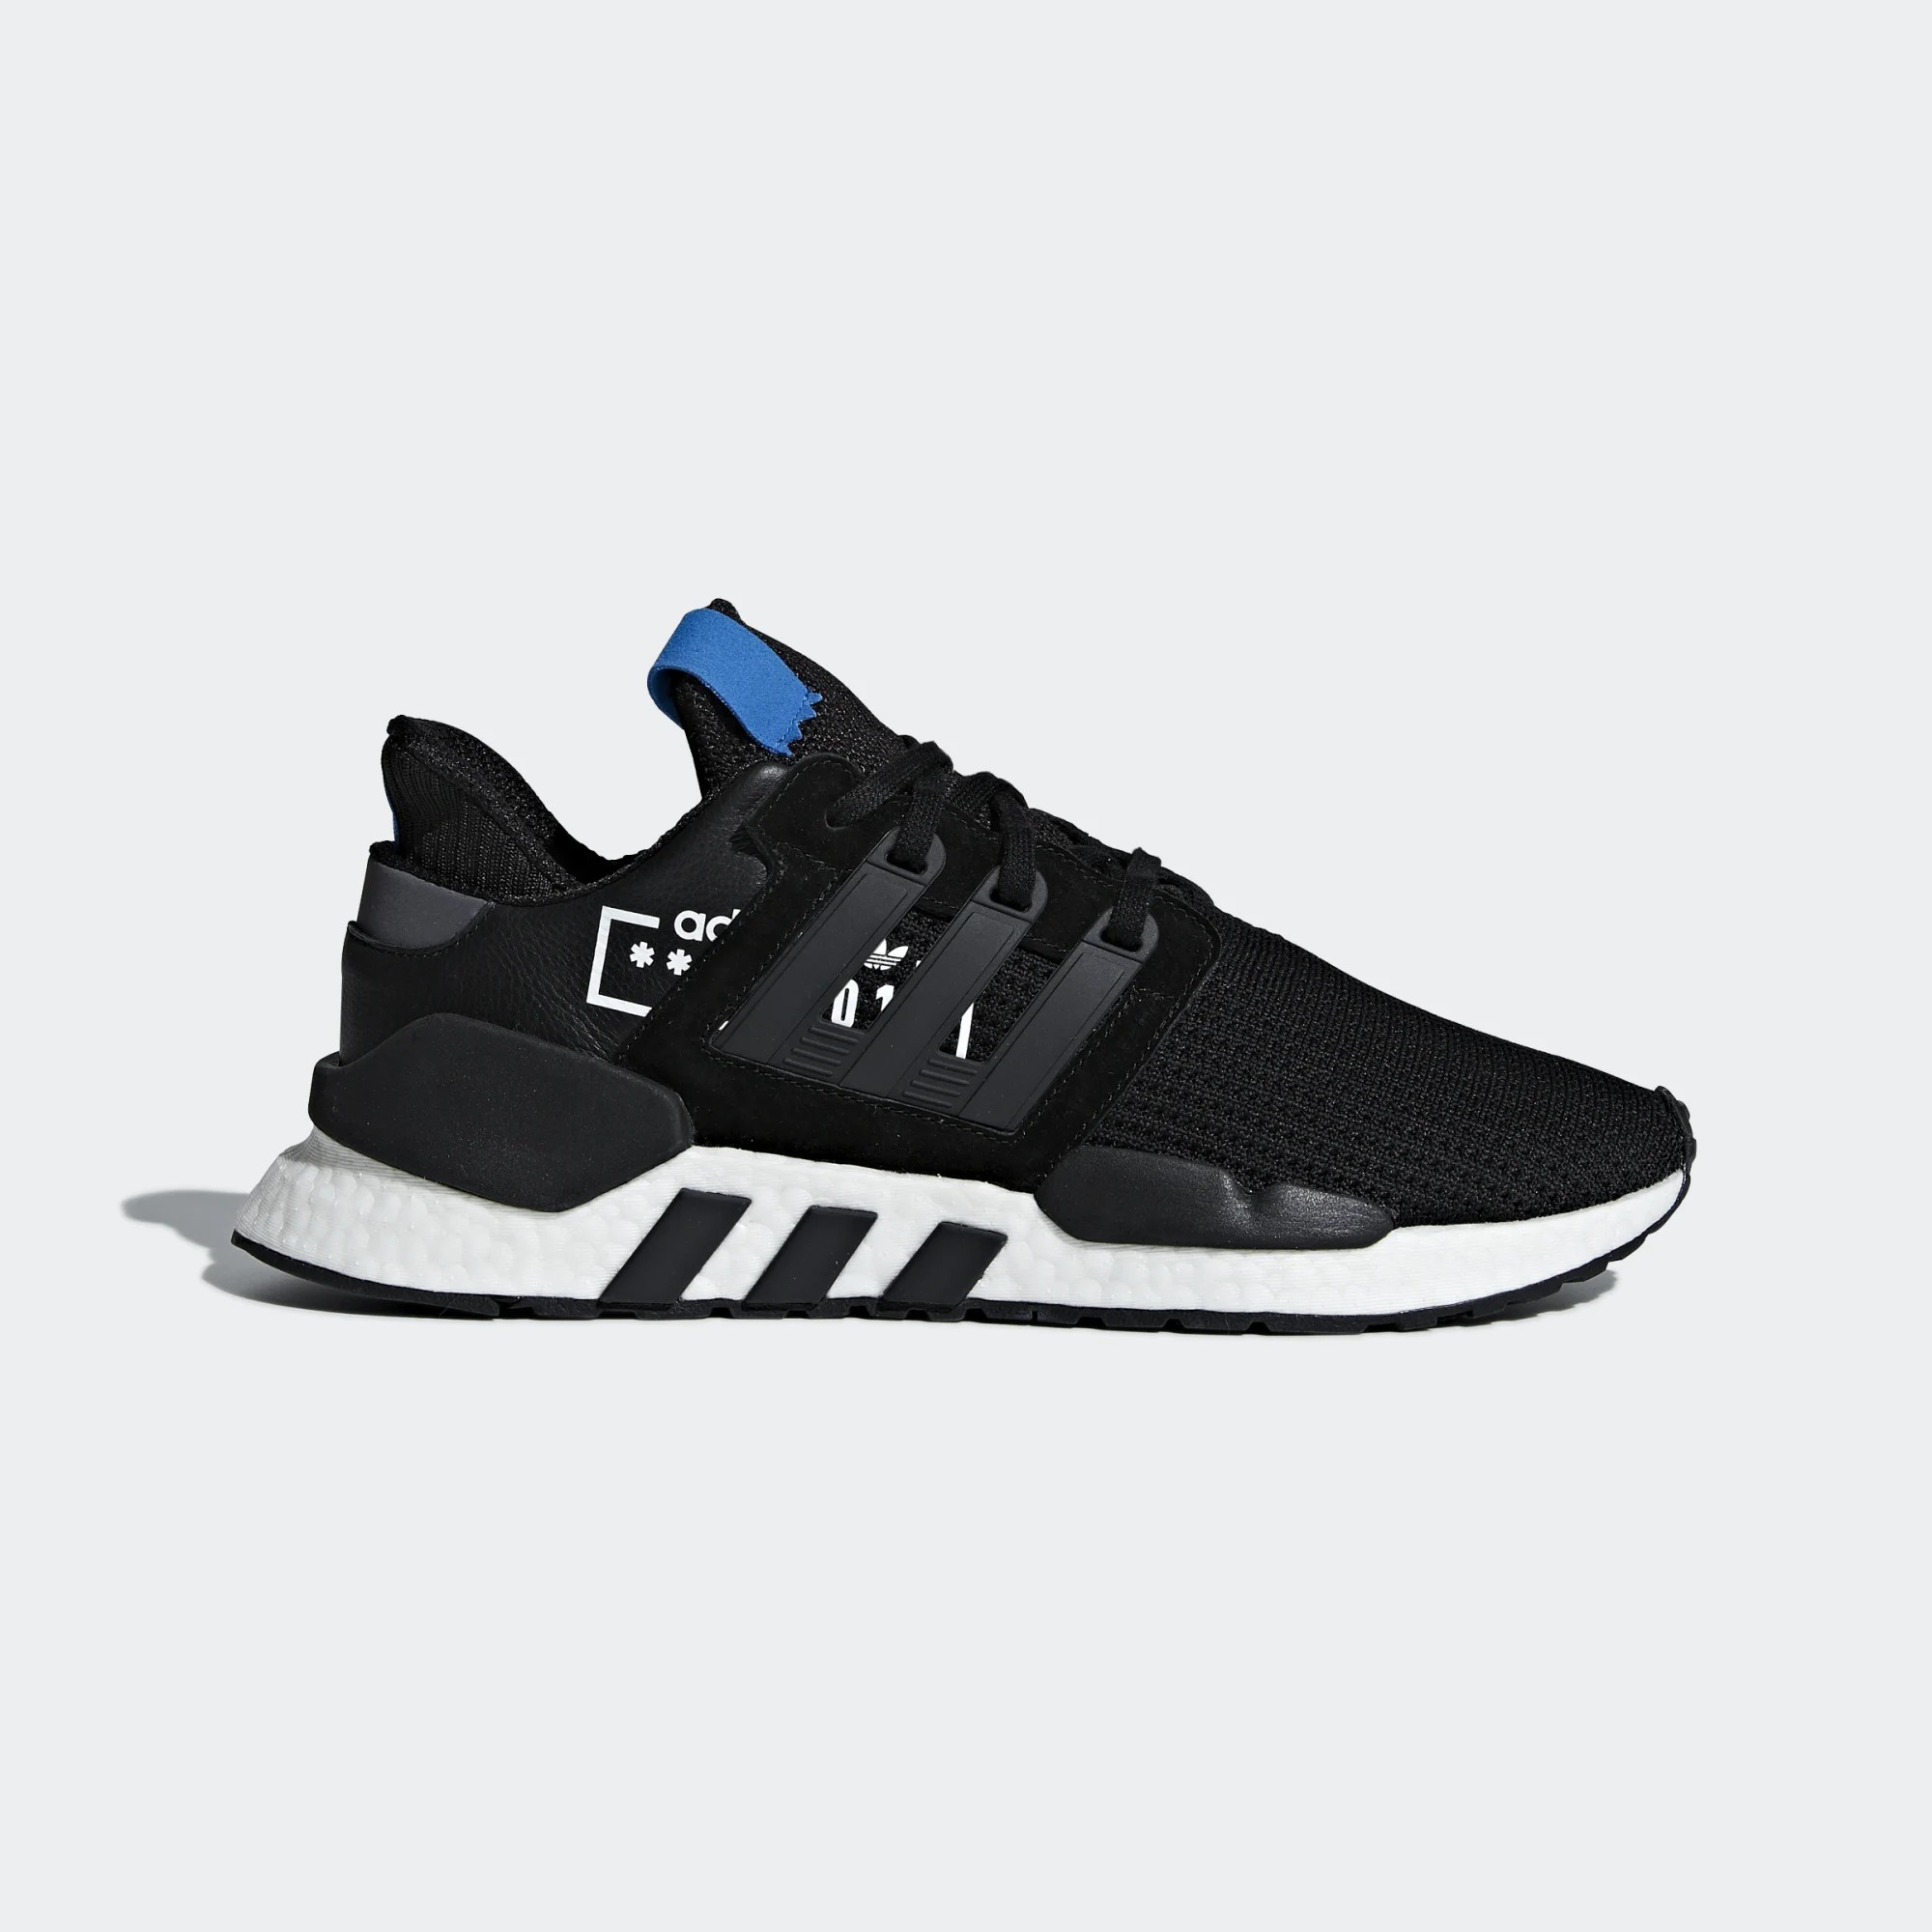 adidas EQT Support 91/98 Black Blue D97061